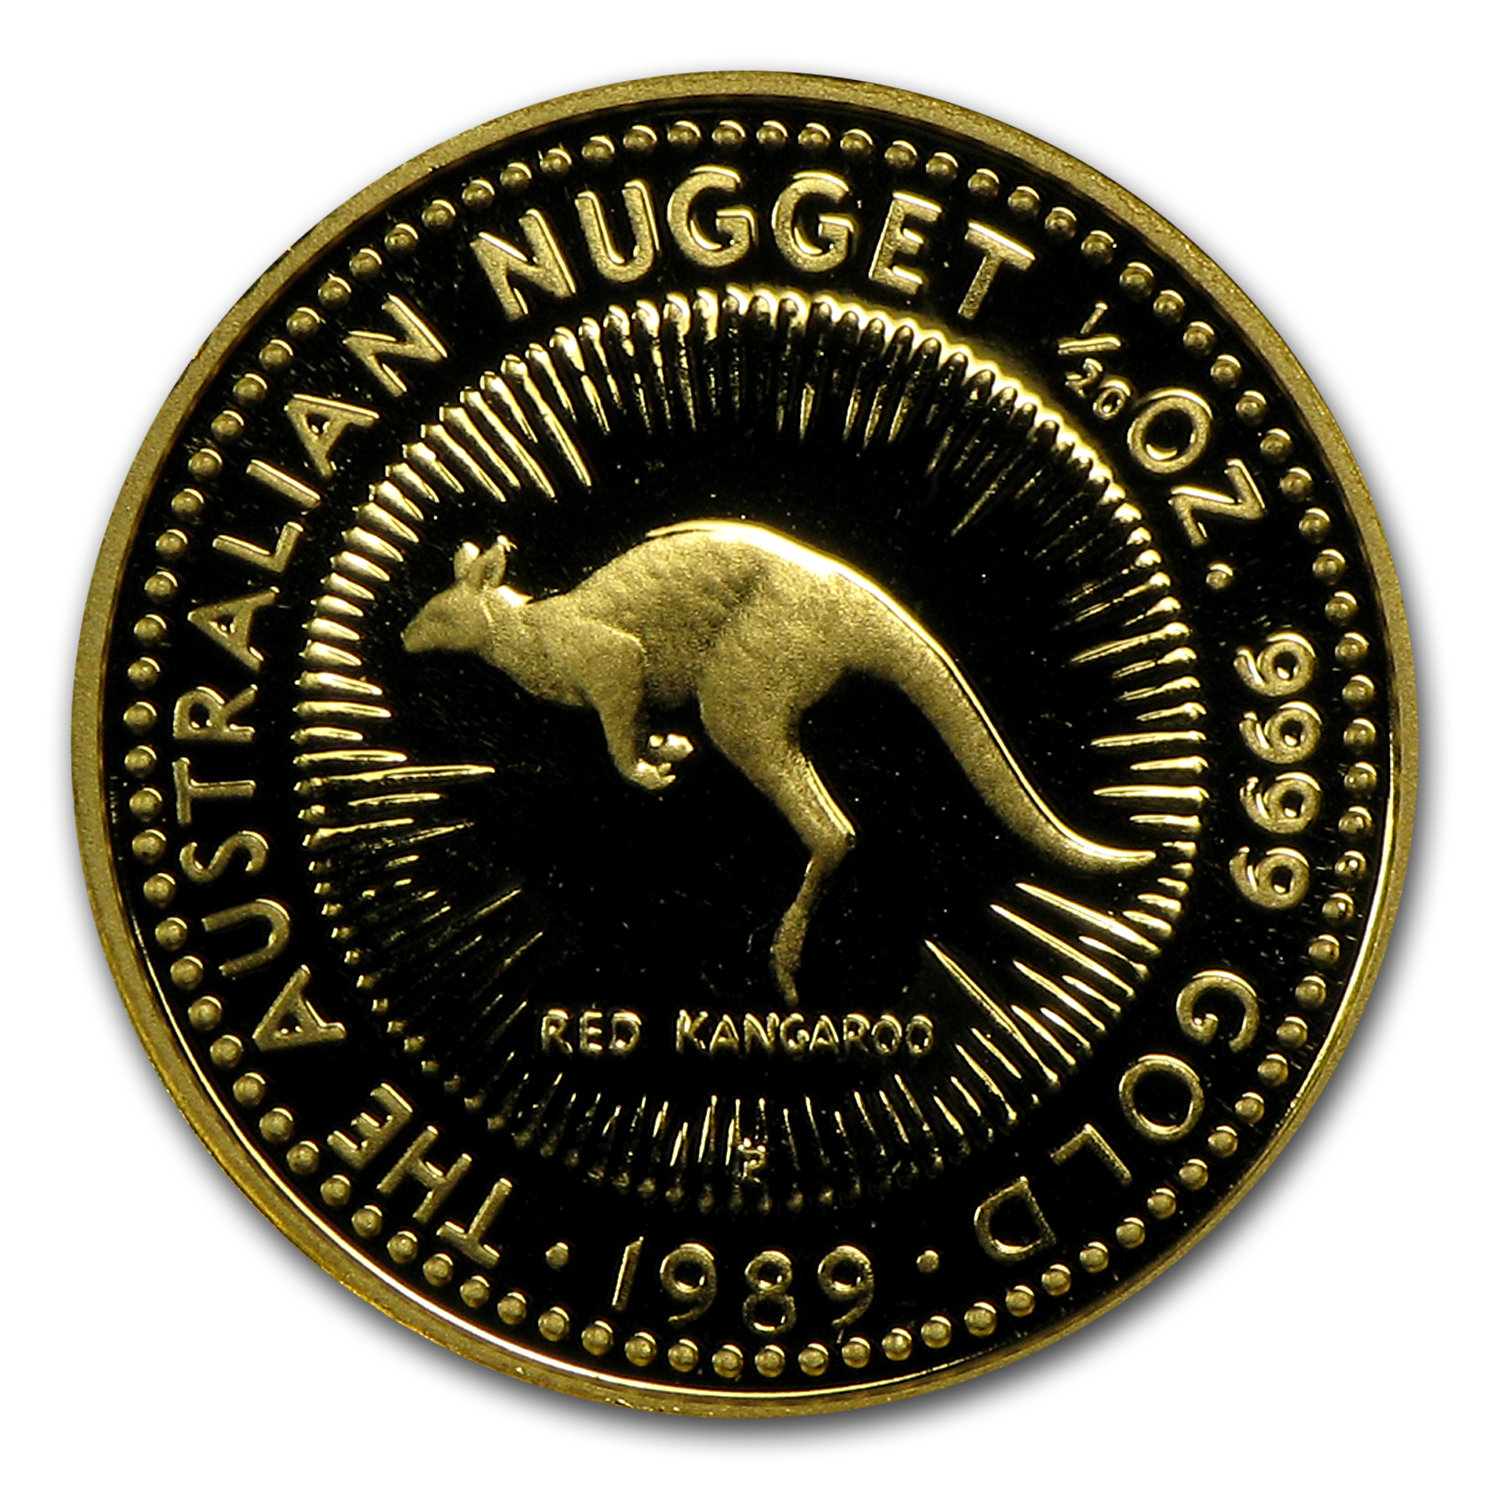 1989 Australia 1/20 oz Proof Gold Nugget